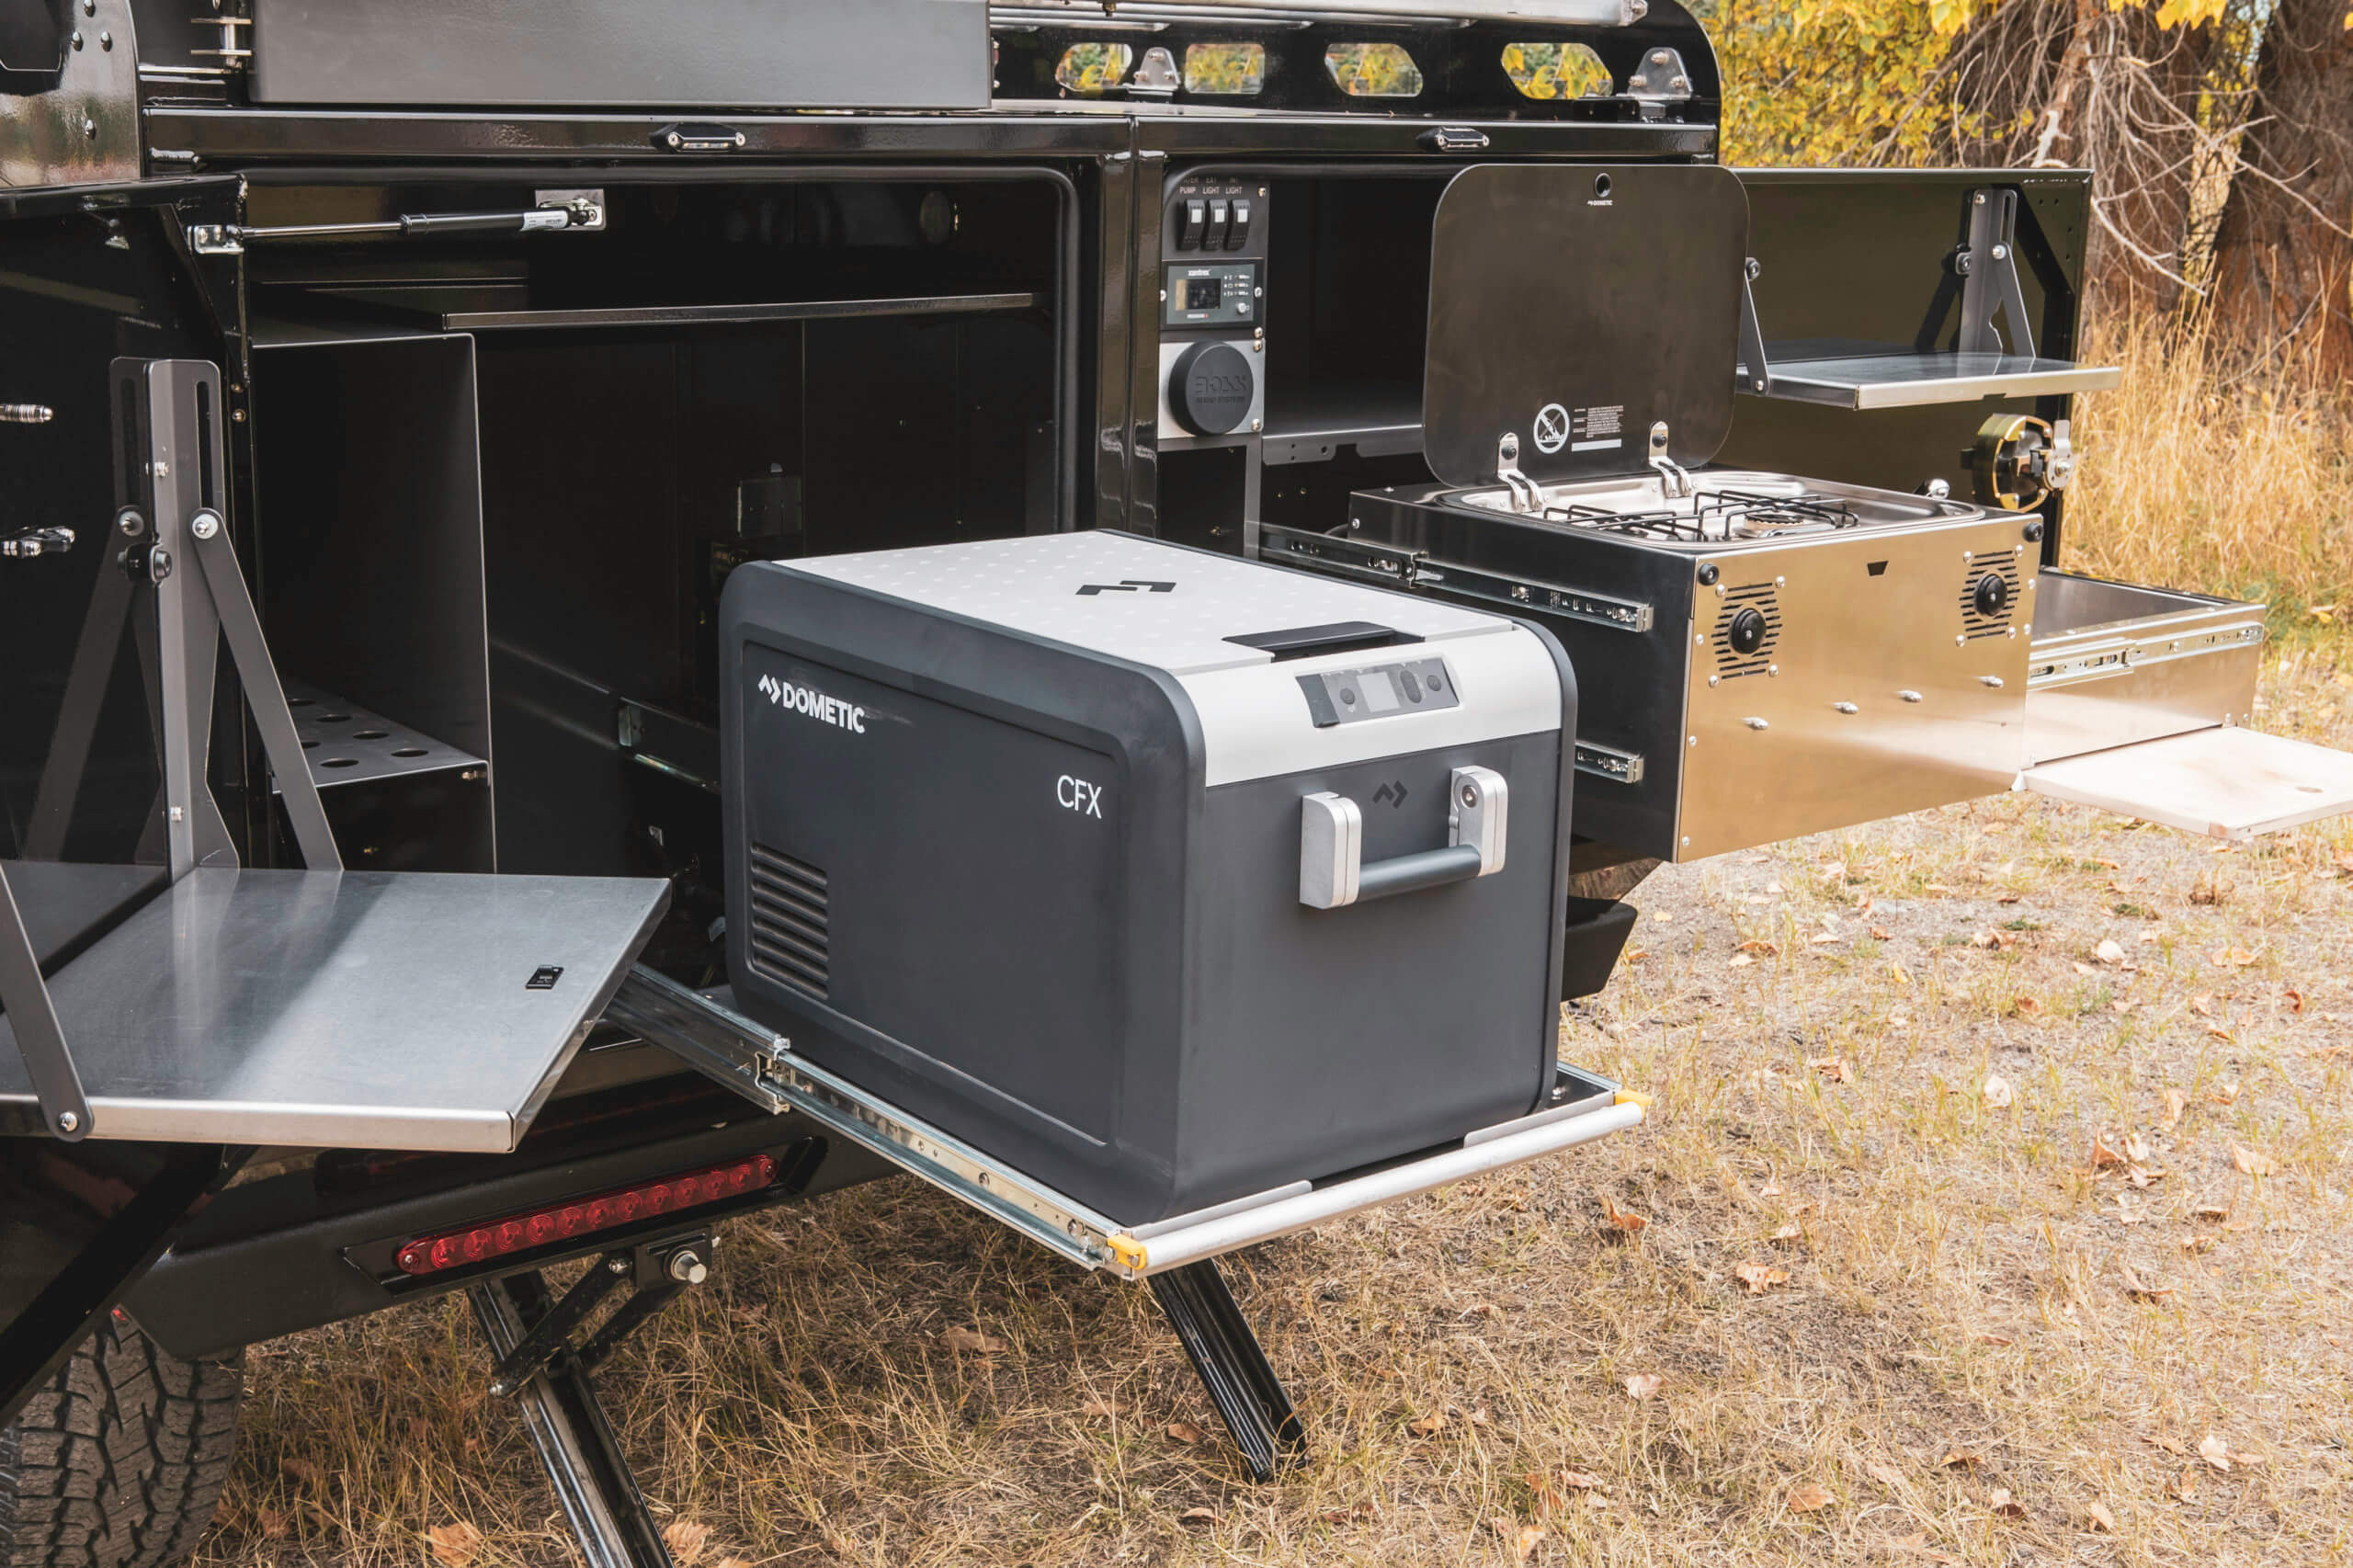 kitchen setup in off road camper